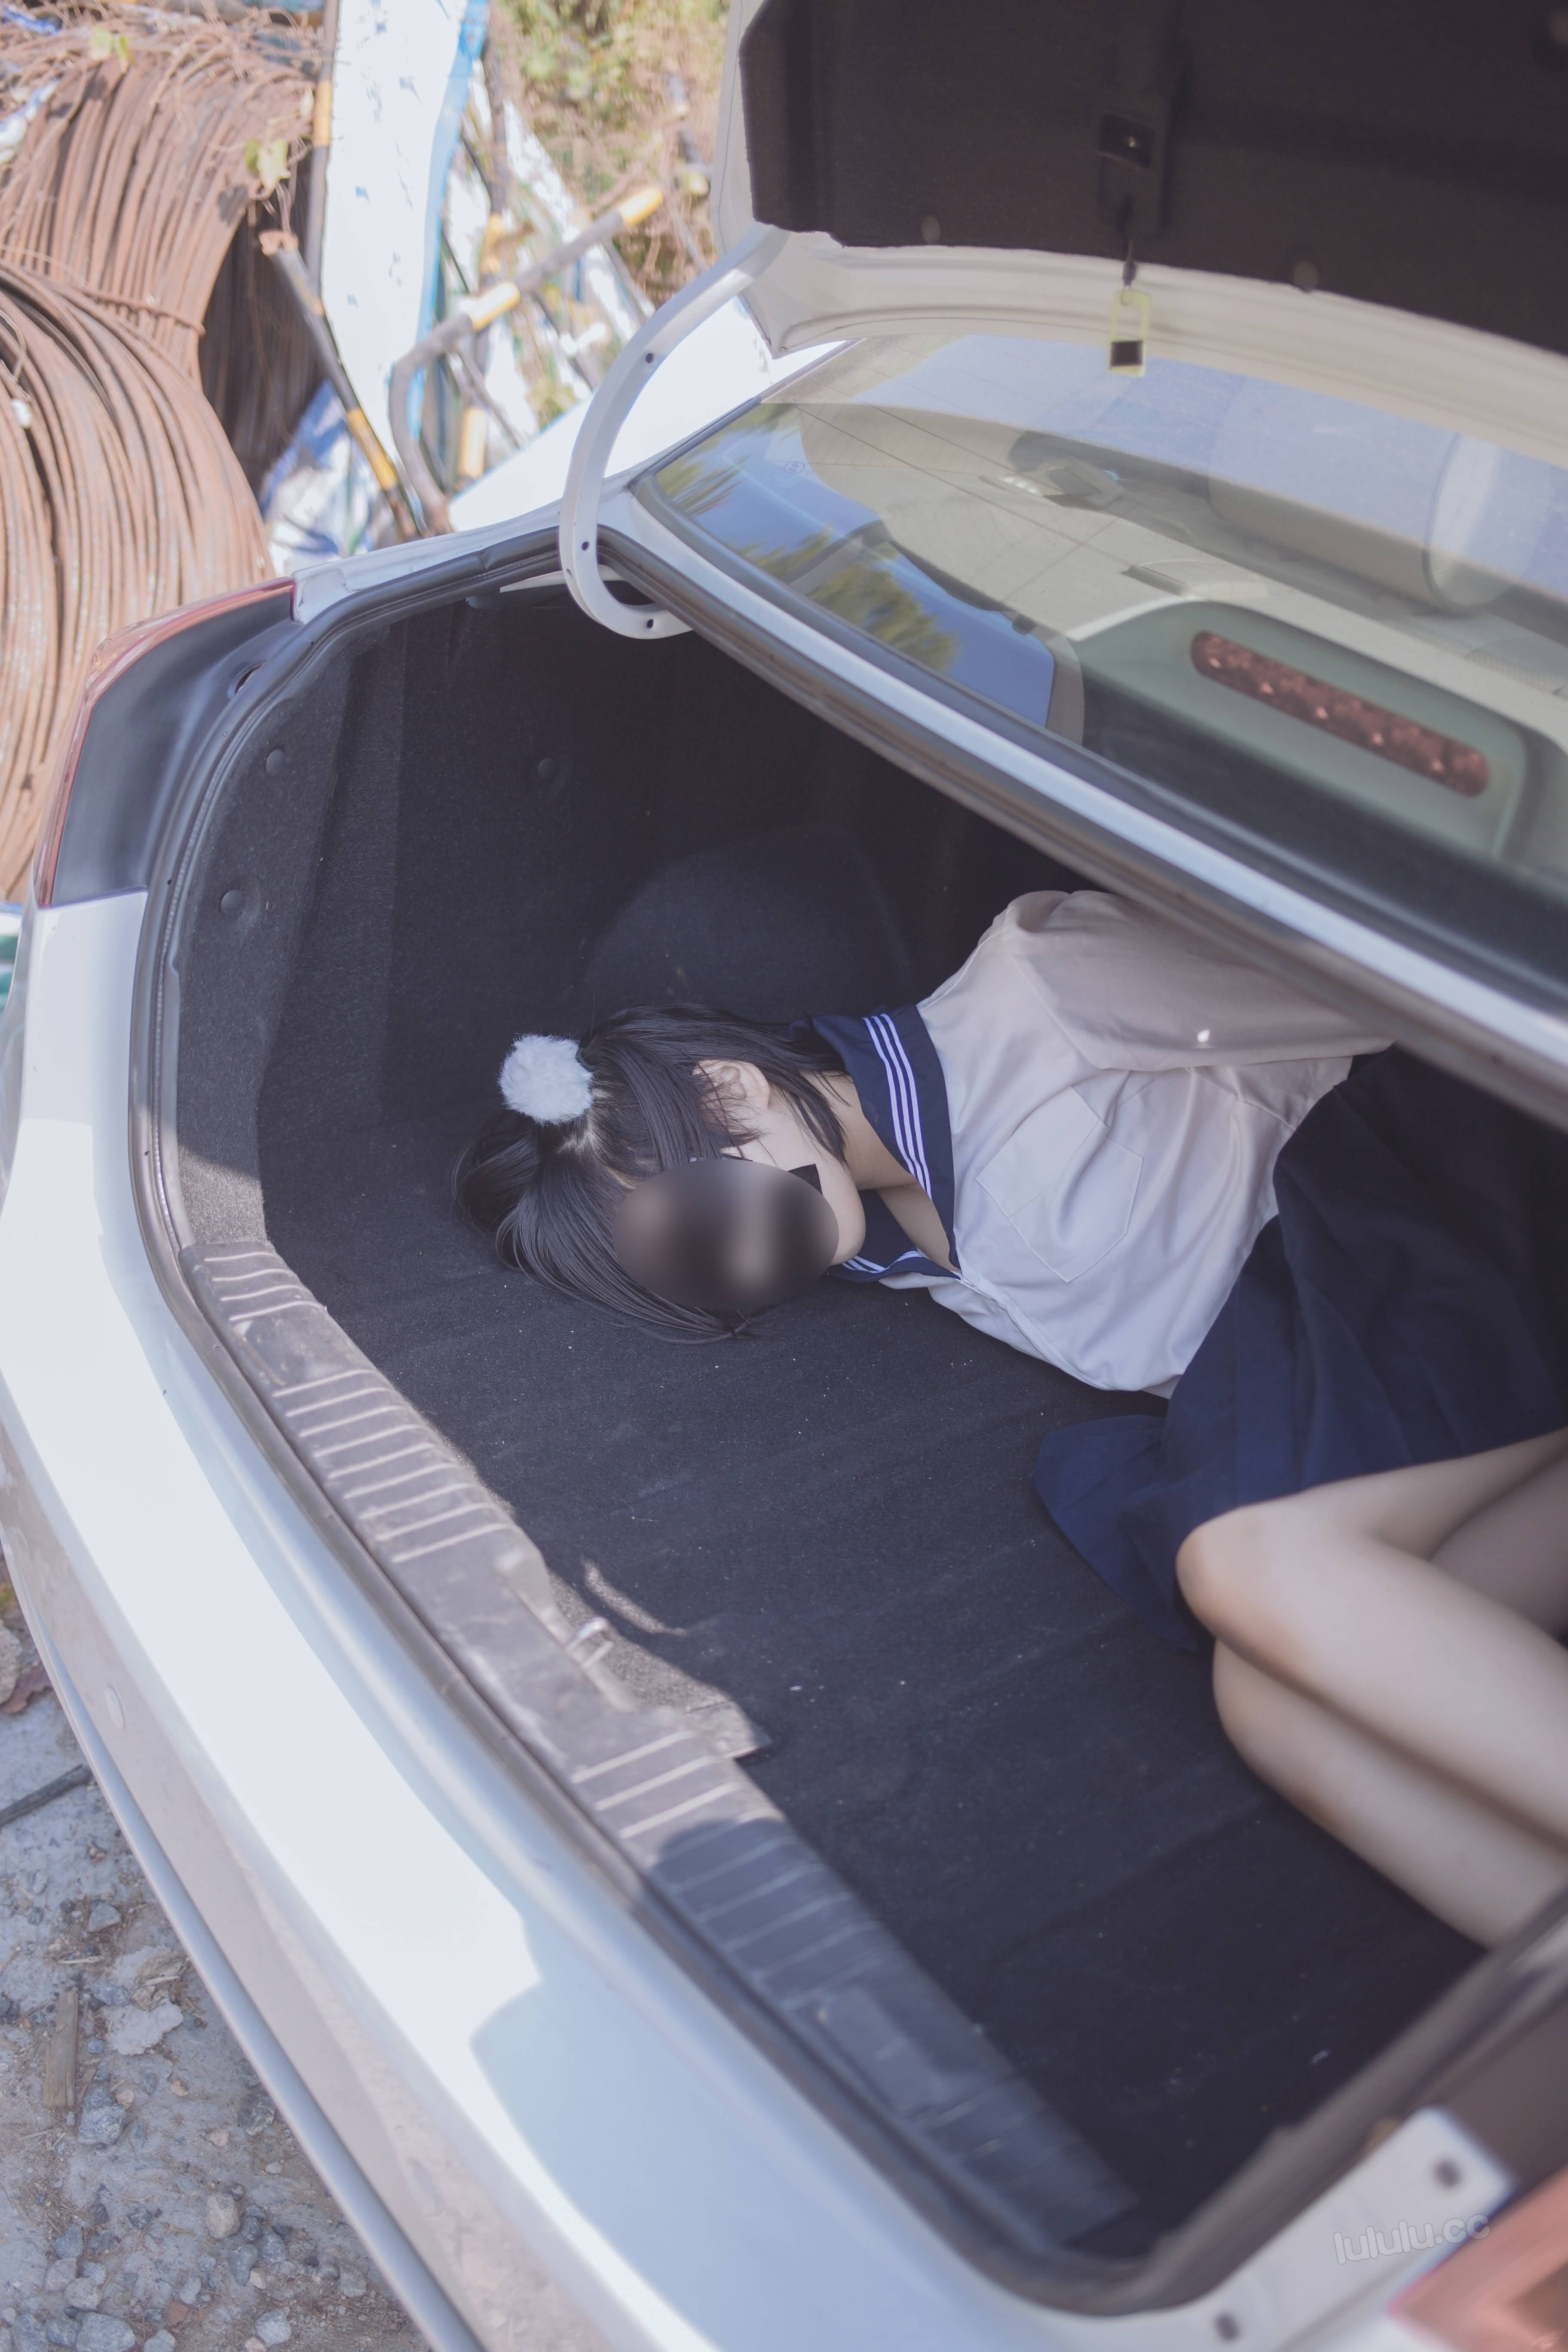 r6BUMn - Japanese schoolgirls were kidnapped and stuffed into the trunk of car 悠宝三岁 JK服